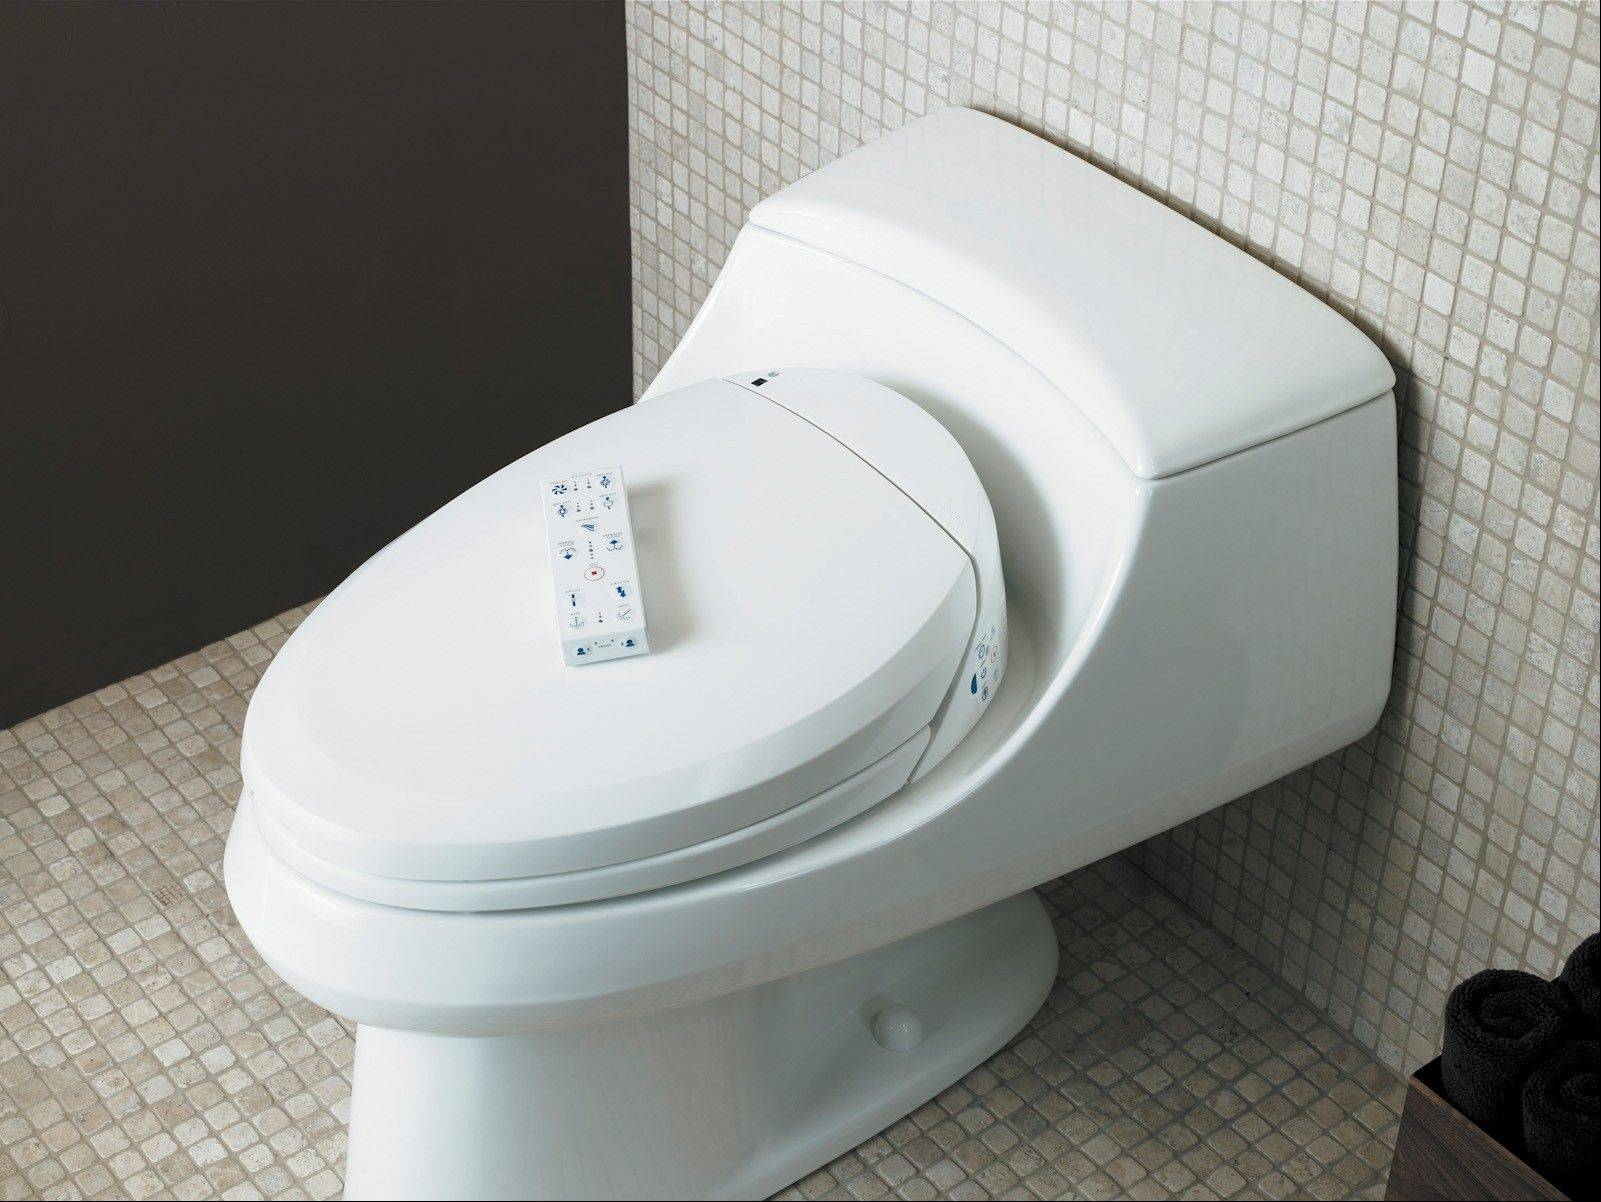 To solve a space issue in your bathroom, a bidet seat can create a plumbing fixture that does double duty in a single space.